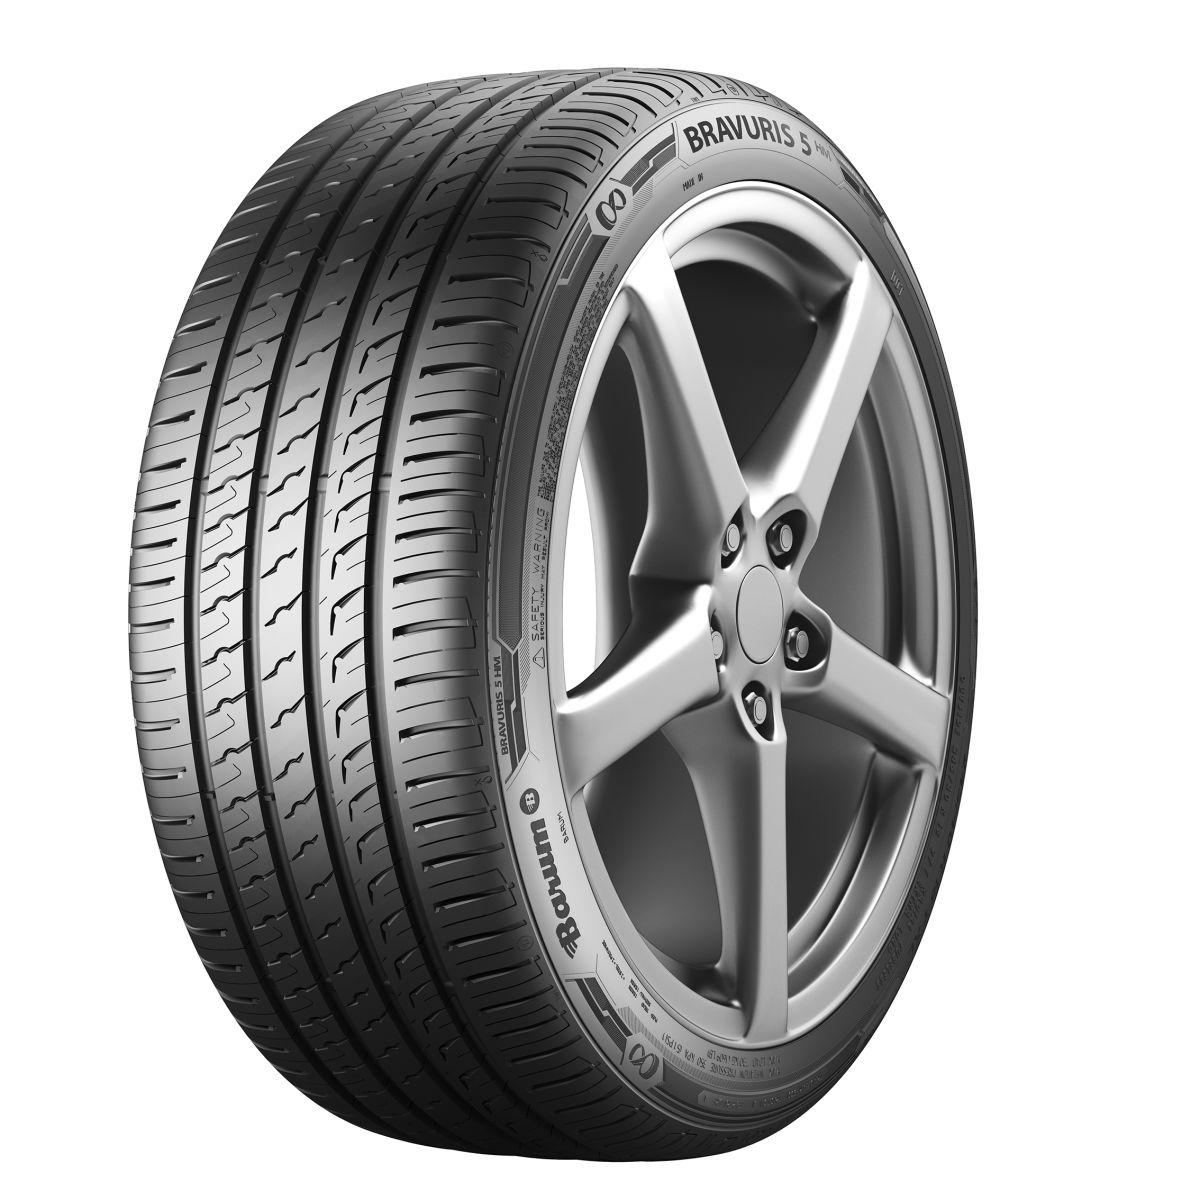 BARUM Bravuris 5HM 245/35 R18 92Y XL FR